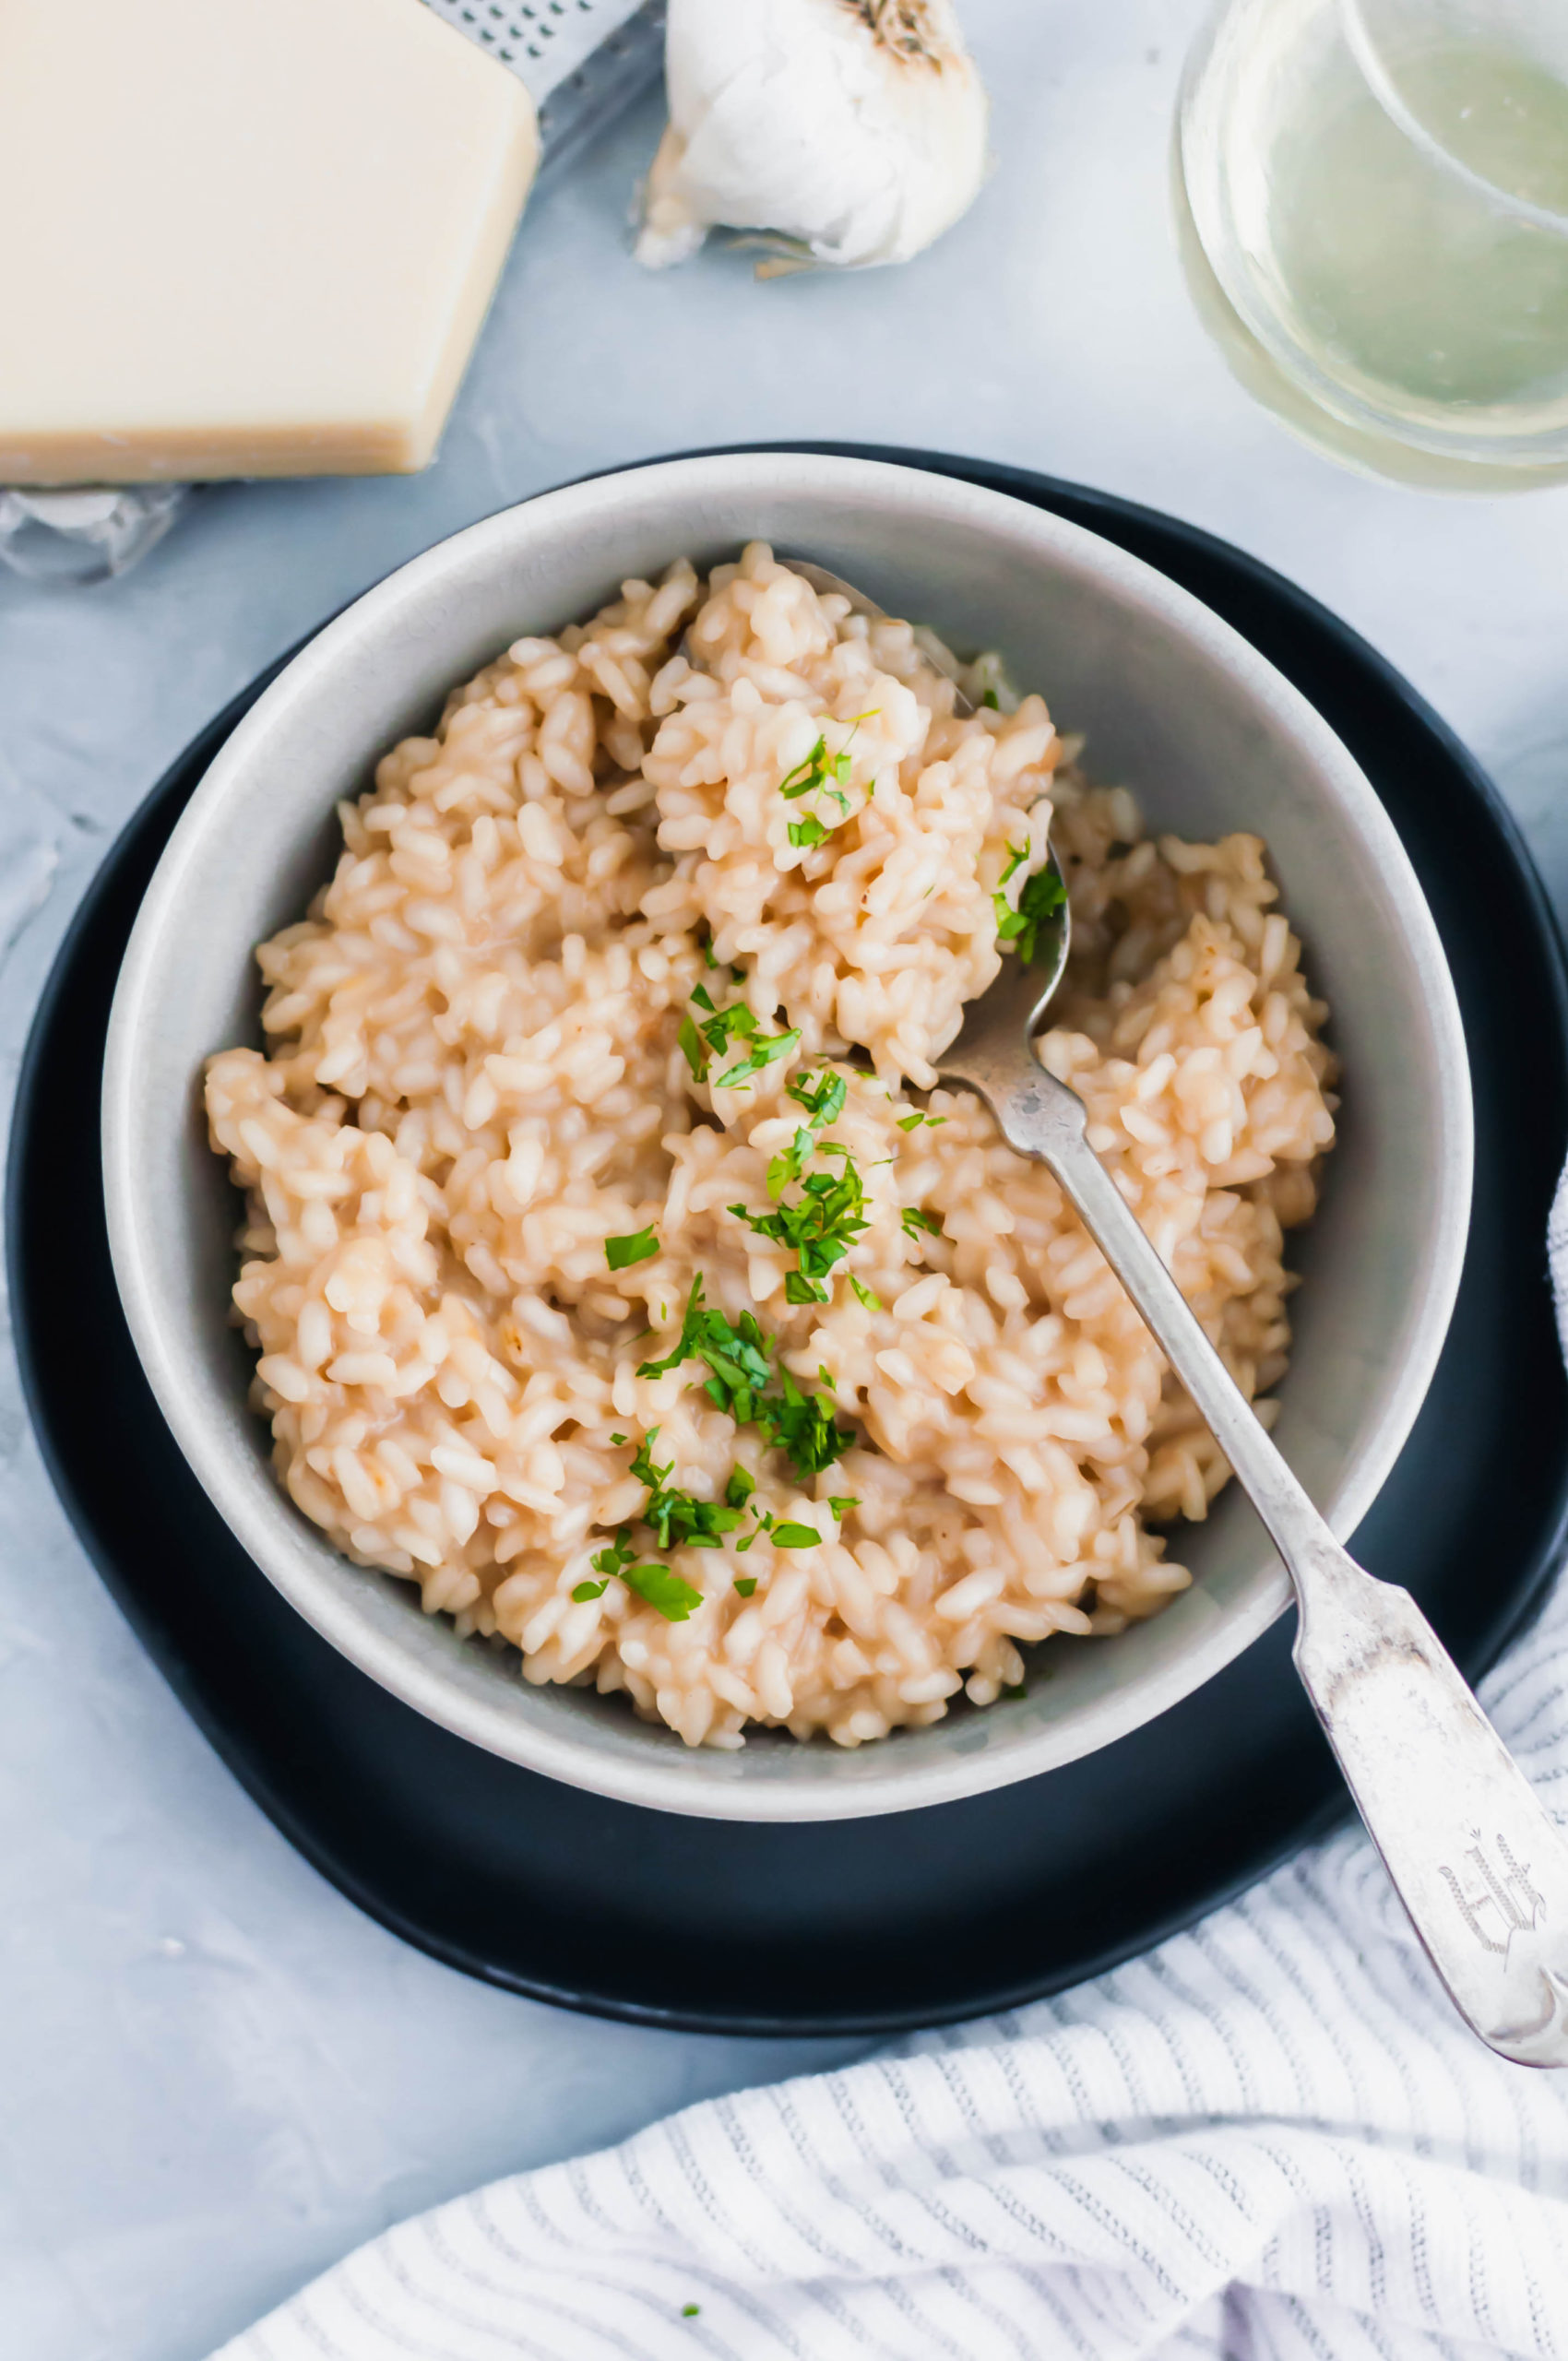 Date night in just got a little fancier with this Roasted Garlic Risotto. Simple risotto jazzed up with sweet, nutty roasted garlic.